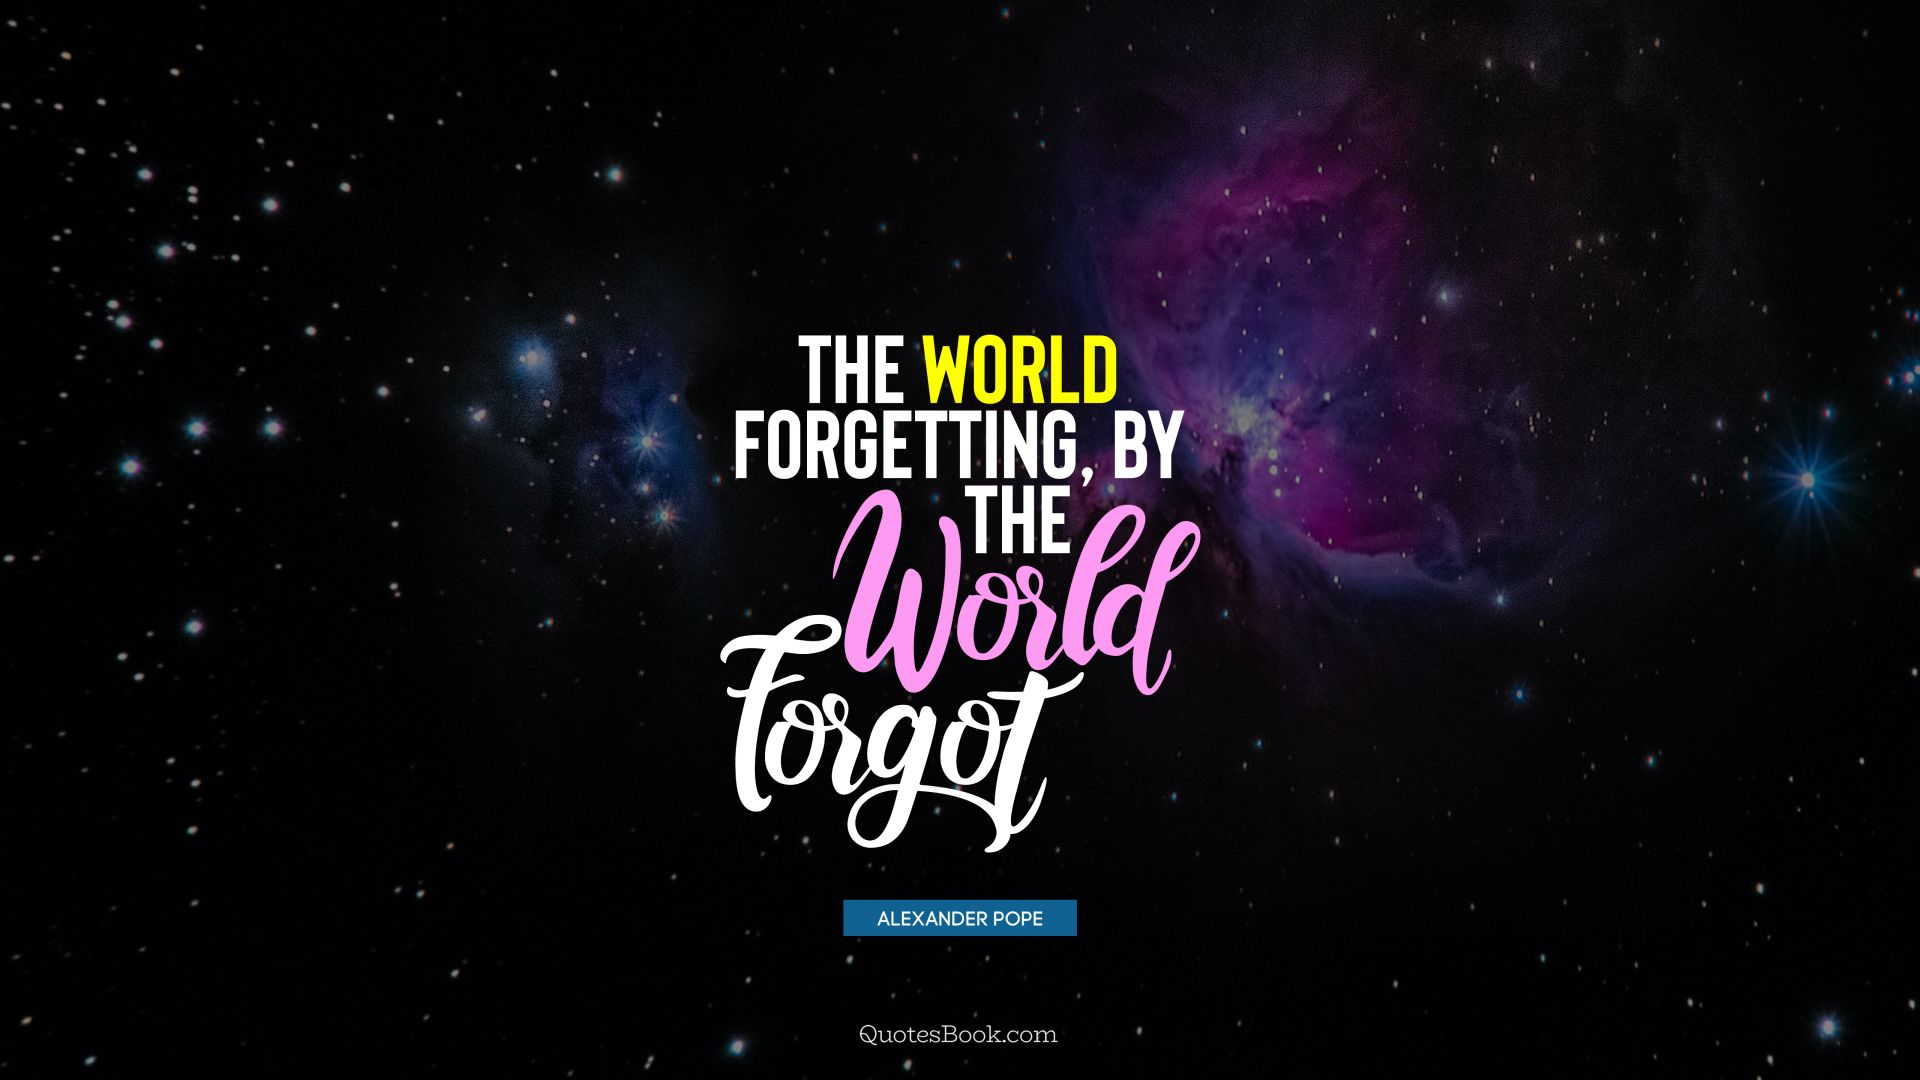 The world forgetting, by the world forgot. - Quote by Alexander Pope